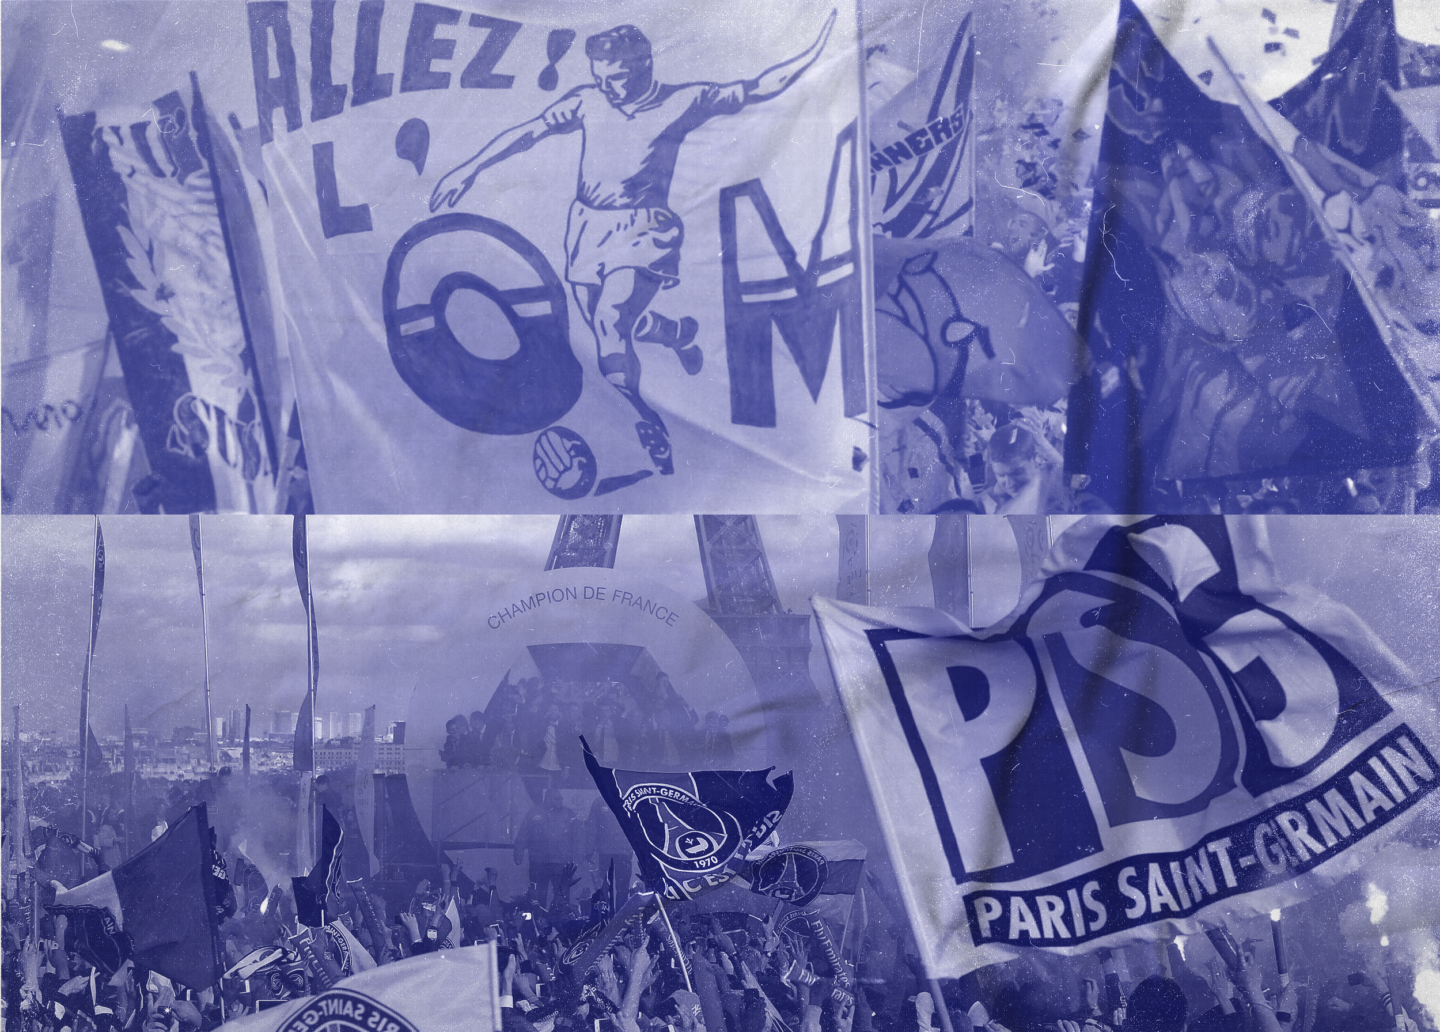 'Le Classique' - The rise & fall of French football's greatest rivalry